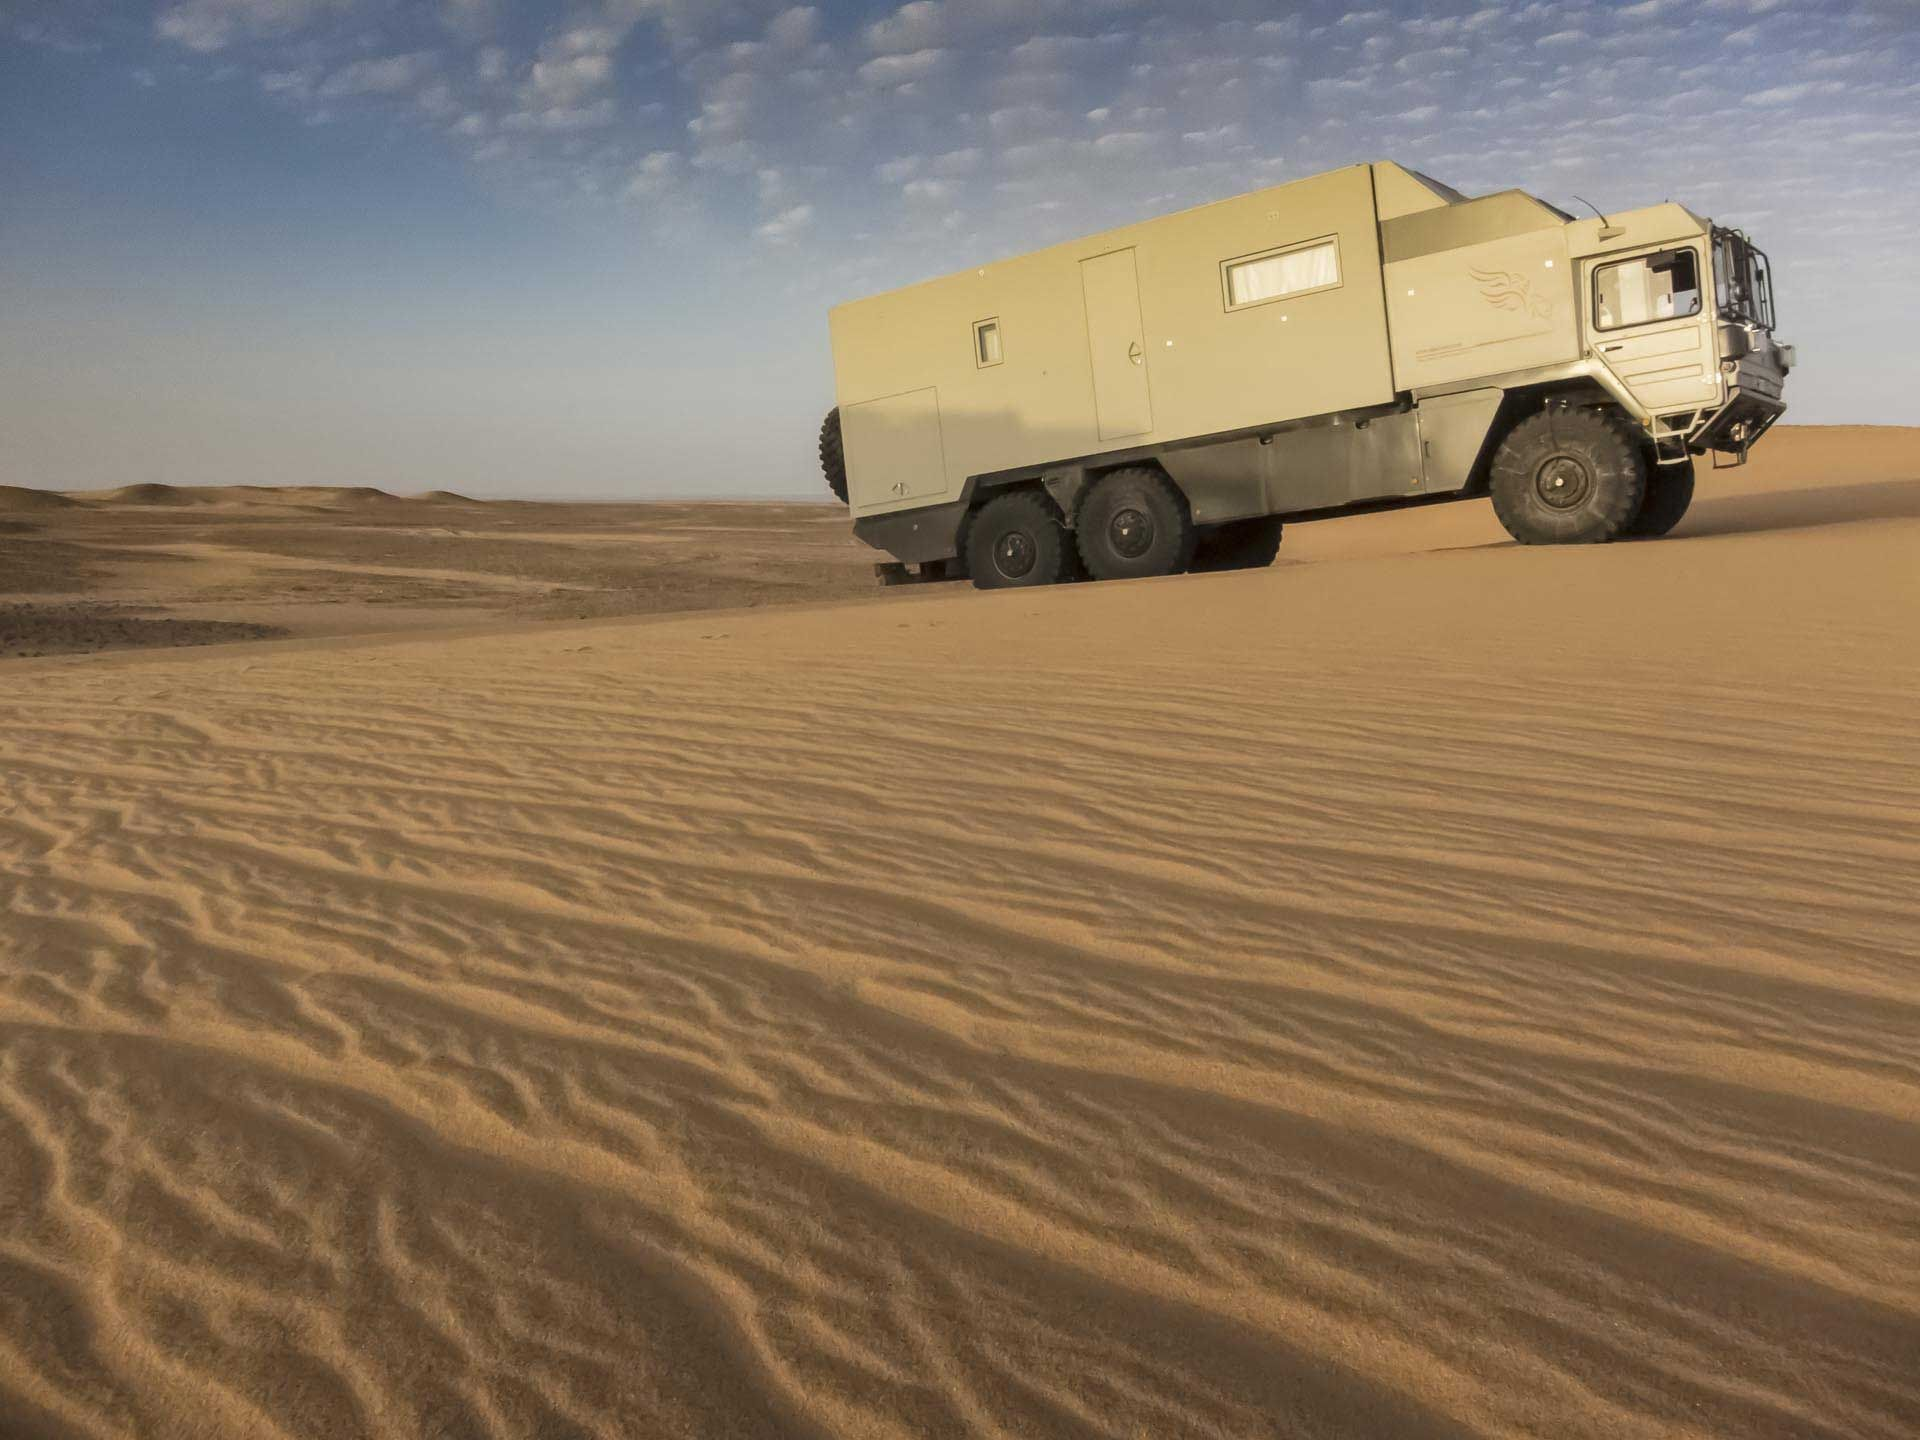 MAN KAT A1 6x6 Expedition Truck by Arno Expedition on 500px